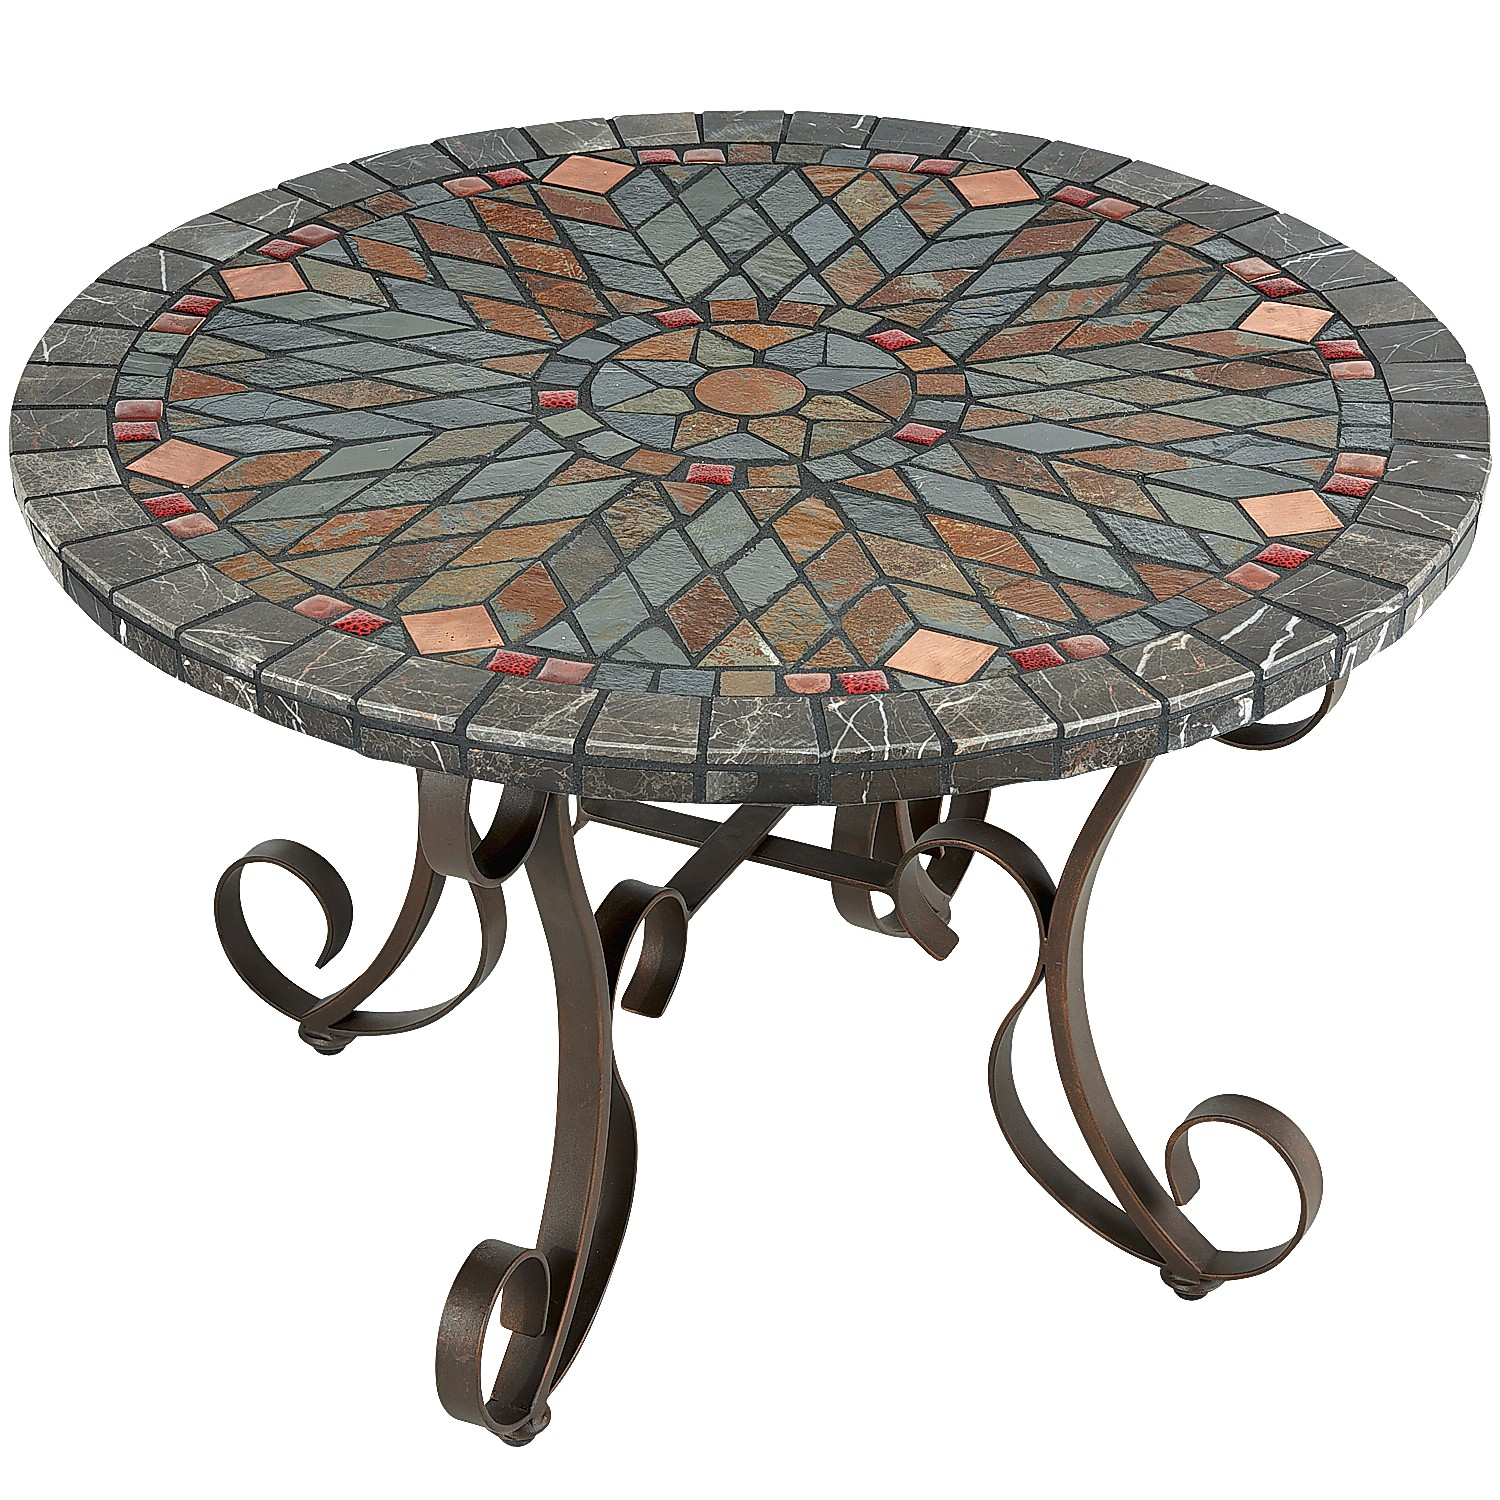 Verazze Mosaic Coffee Table